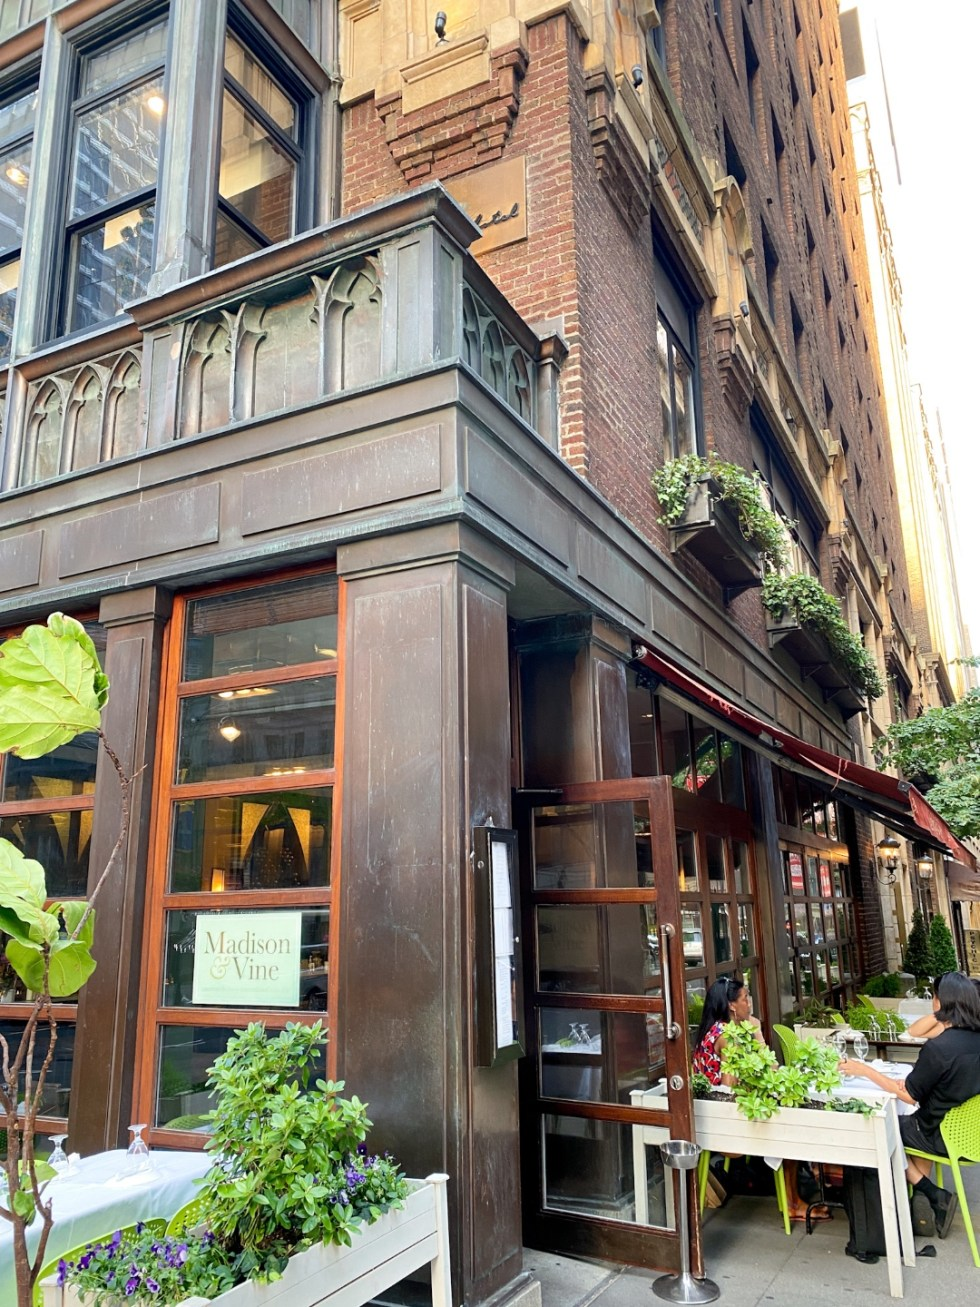 NYC Summer Weekend: Things to Do in NYC in the Summer - I'm Fixin' To - @imfixintoblog   NYC Summer Weekend by popular NC travel blog, I'm Fixin' To: image of Madison and Vine.